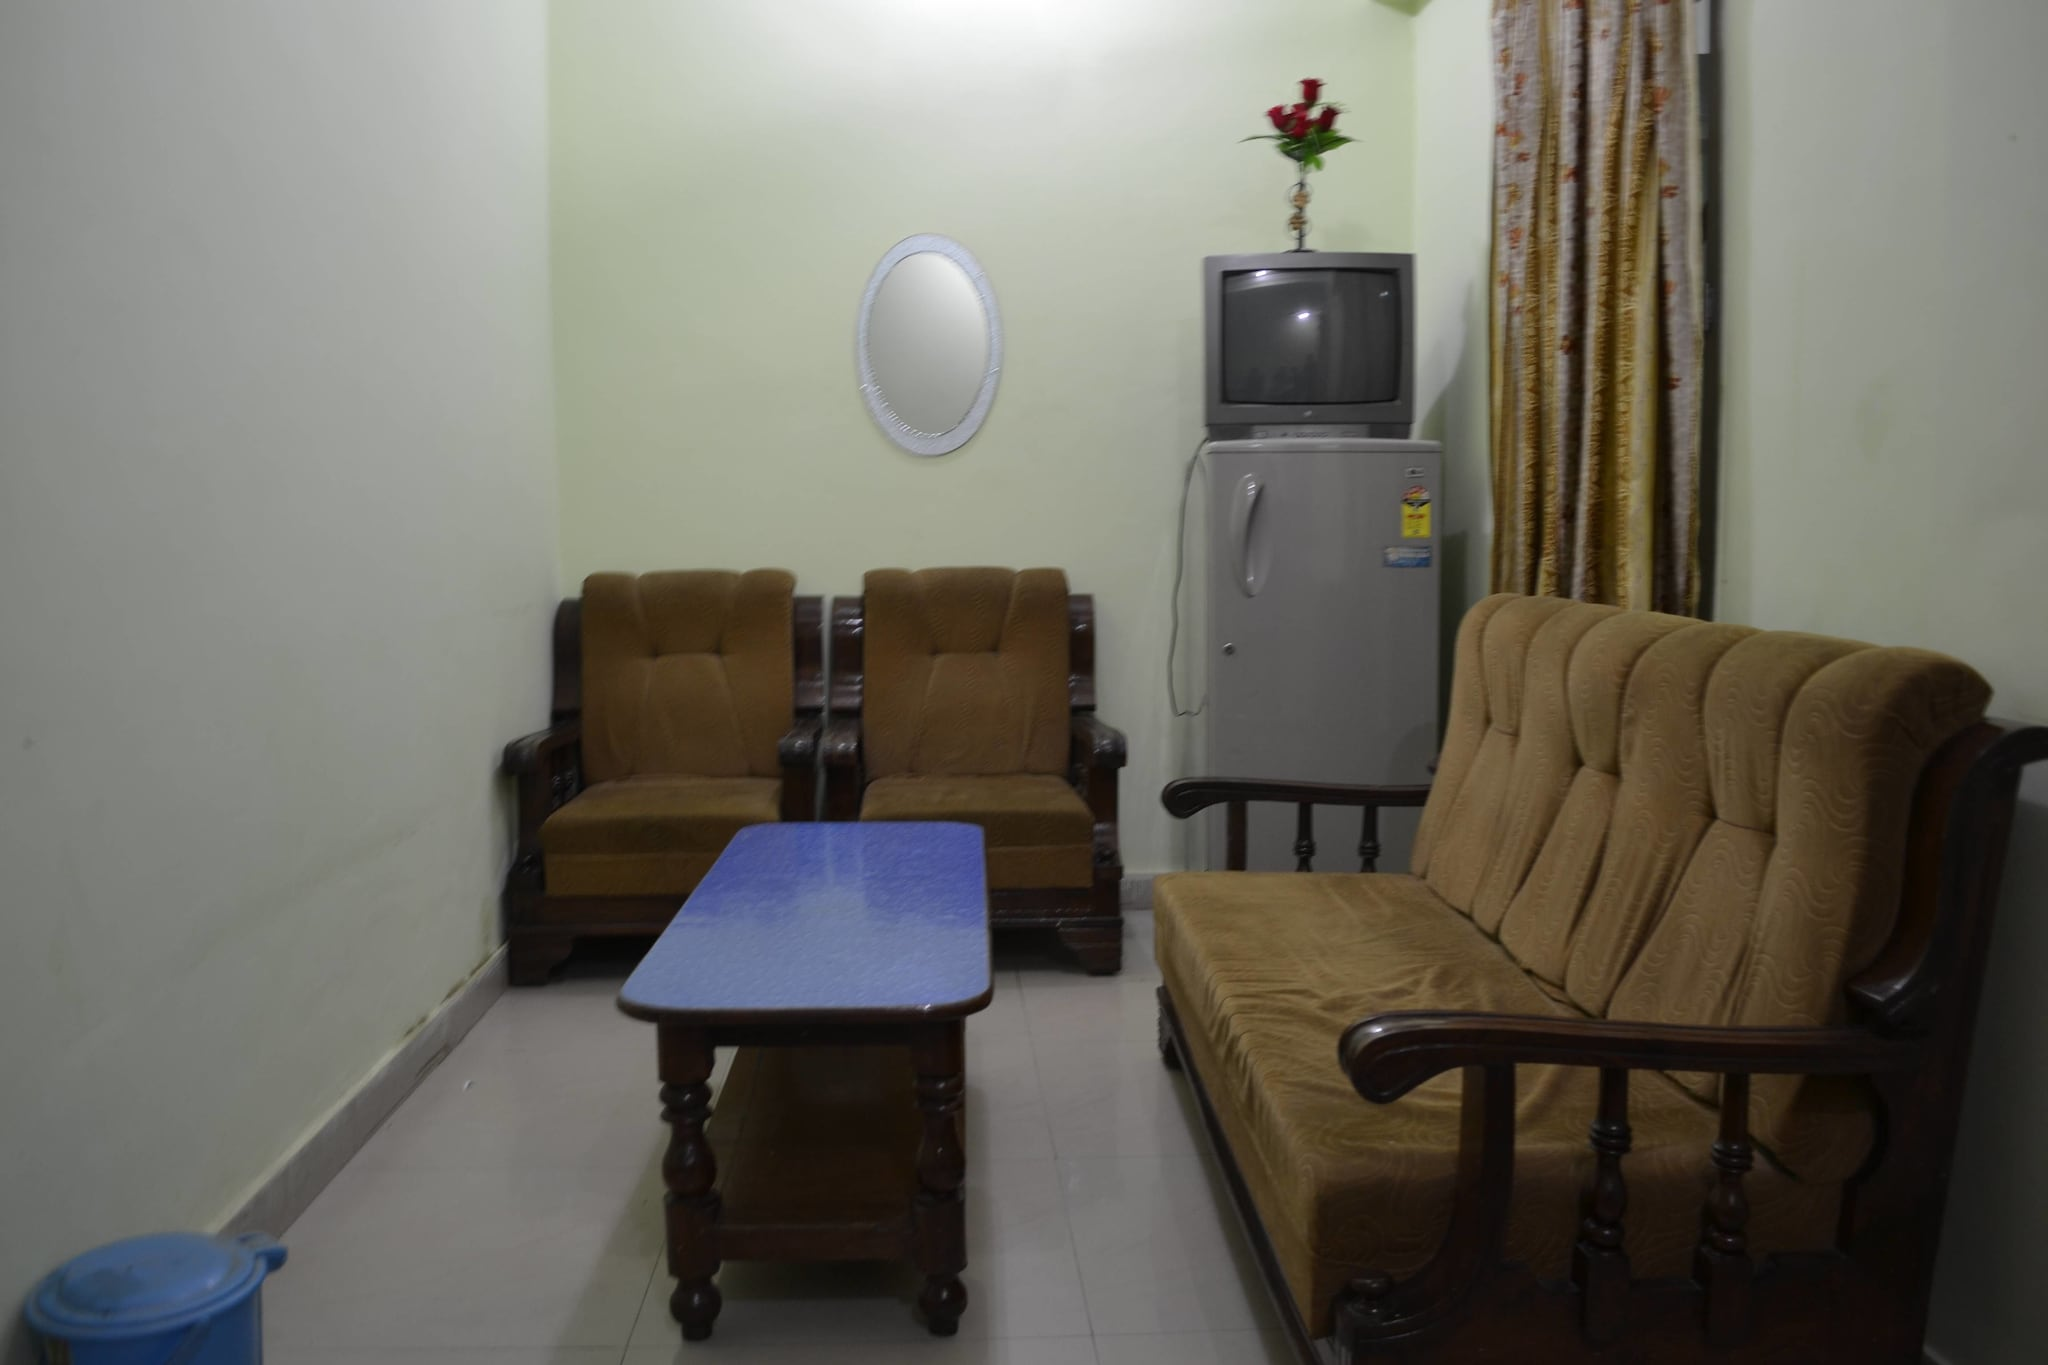 ff7731ef901 Top Ac Guest House in Sandila - Best Air Conditioned Guest House ...